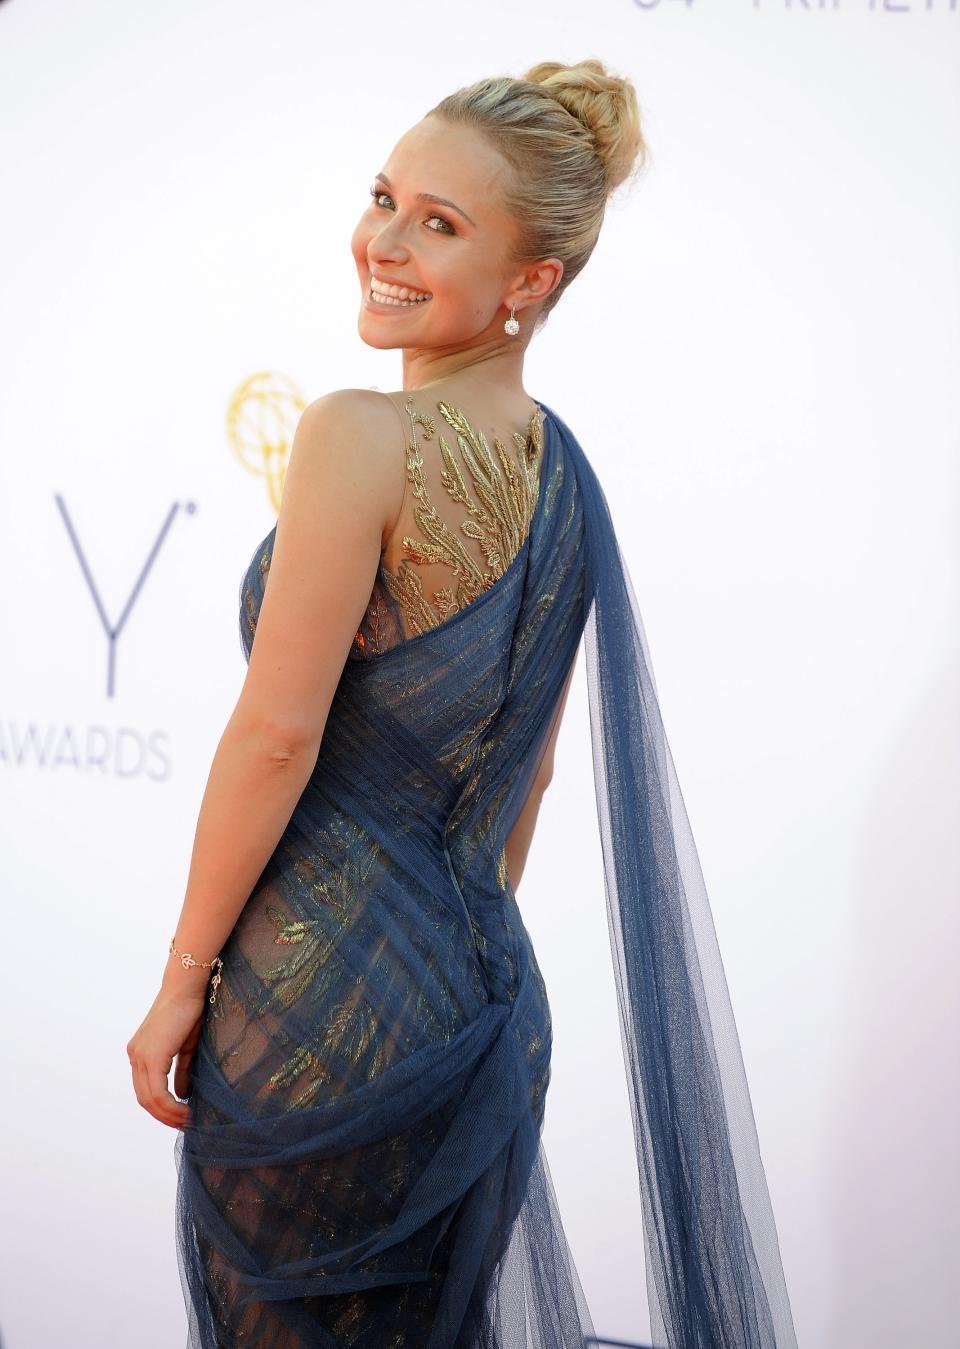 Actress Hayden Panettiere arrives at the 64th Primetime Emmy Awards at the Nokia Theatre on Sunday, Sept. 23, 2012, in Los Angeles.  (Photo by Jordan Strauss/Invision/AP)